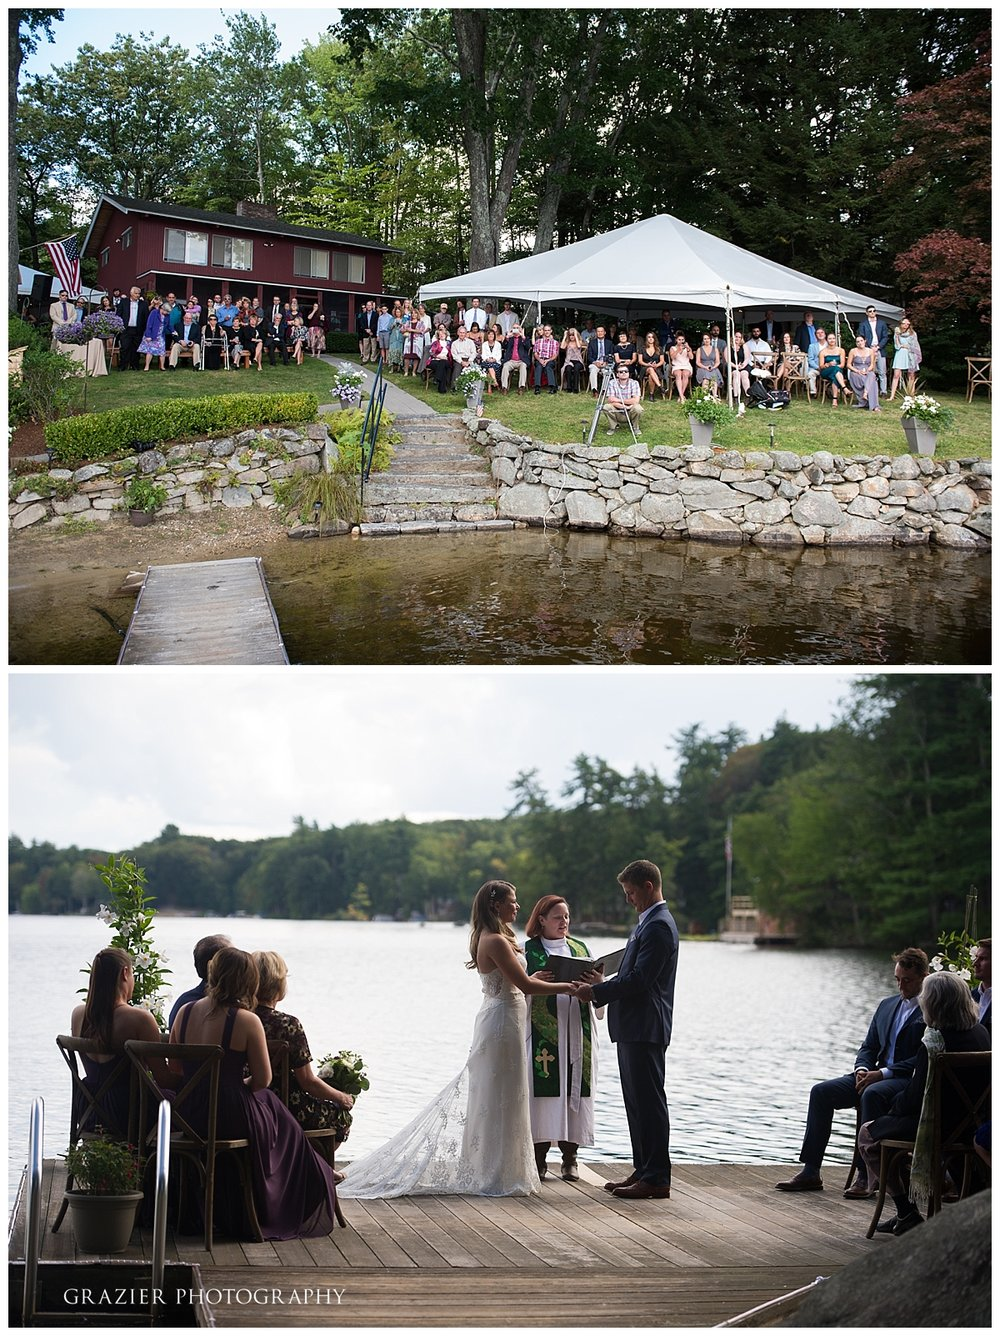 New Hampshire Lake Wedding Grazier Photography 170909-165_WEB.jpg